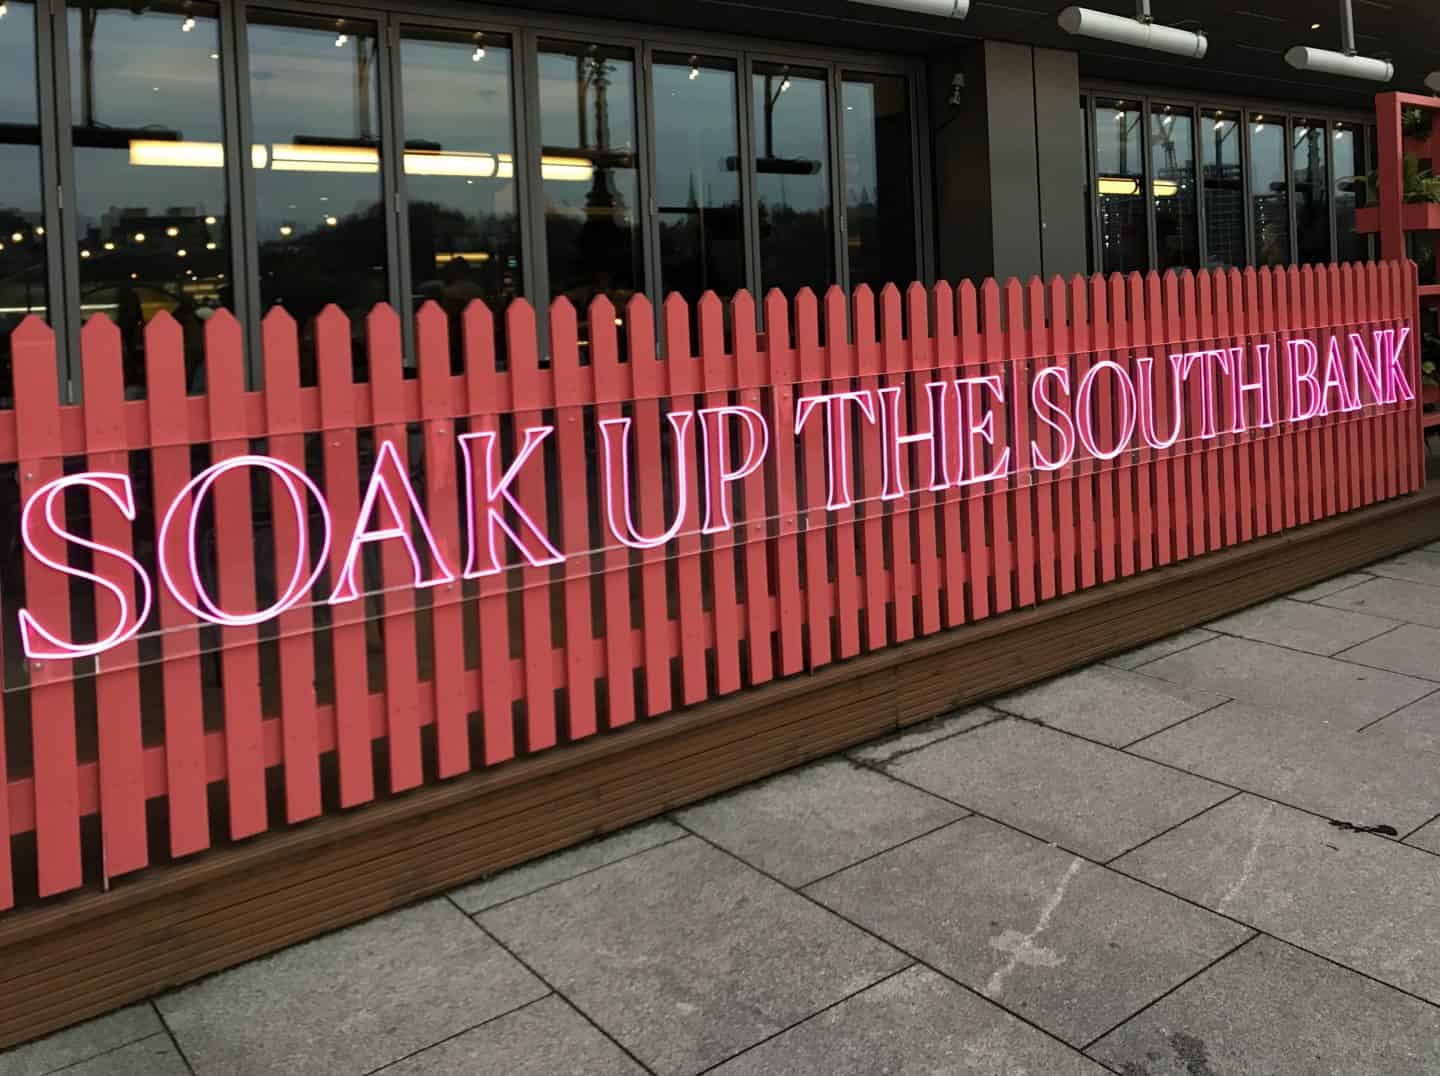 Soak up the Southbank in London